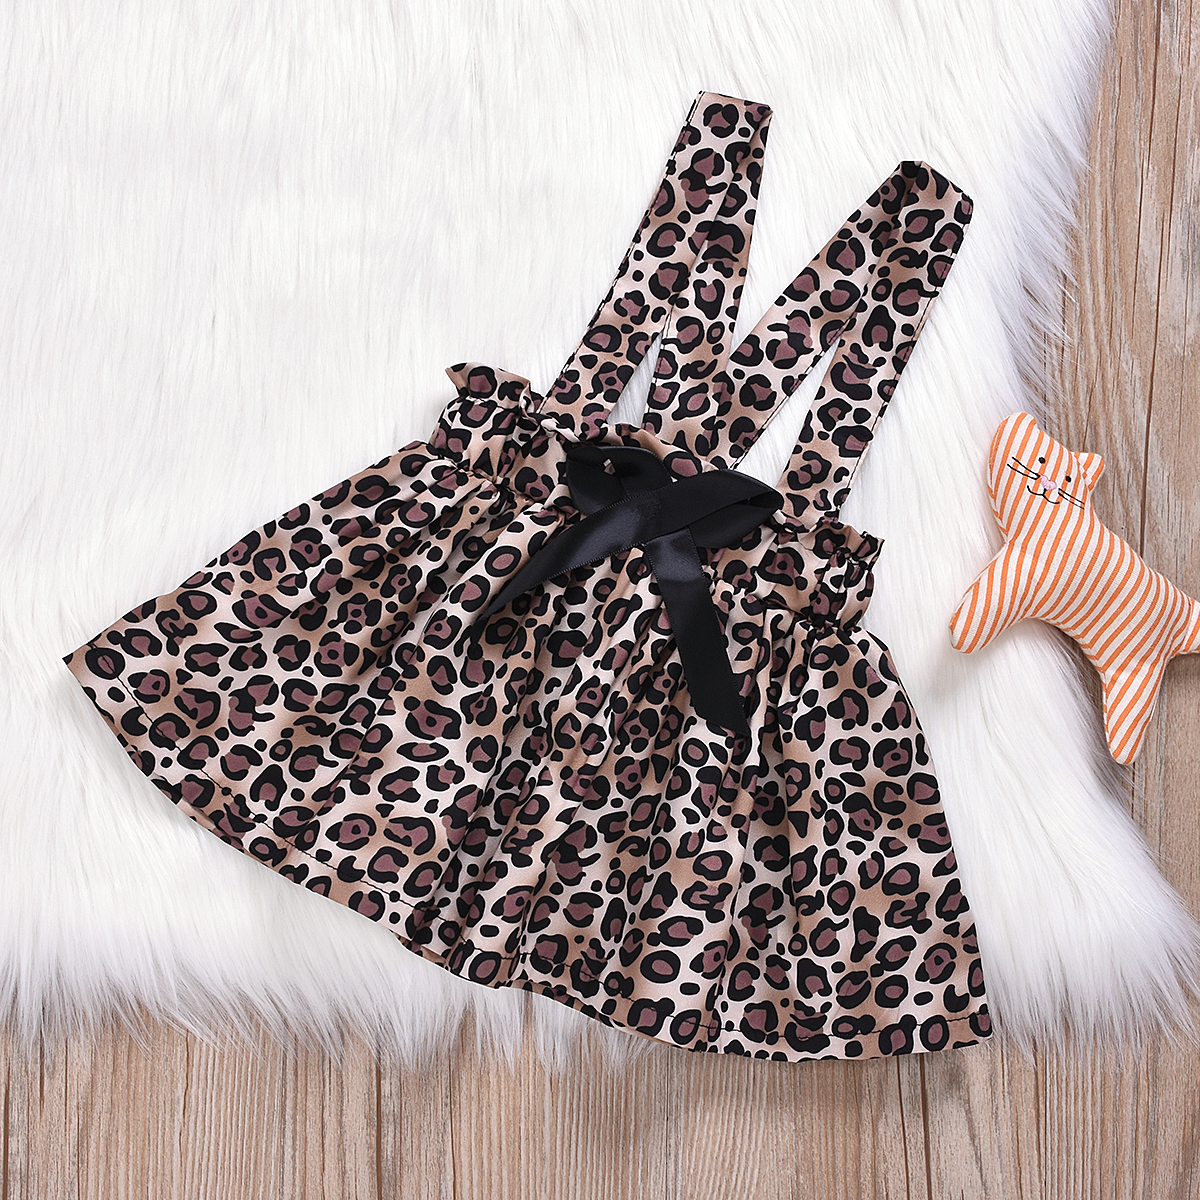 0-4T Newborn Toddler Kid Baby Girl Clothes Set T-Shirts Tops Skirt Autumn Winter Clothes Pakistan